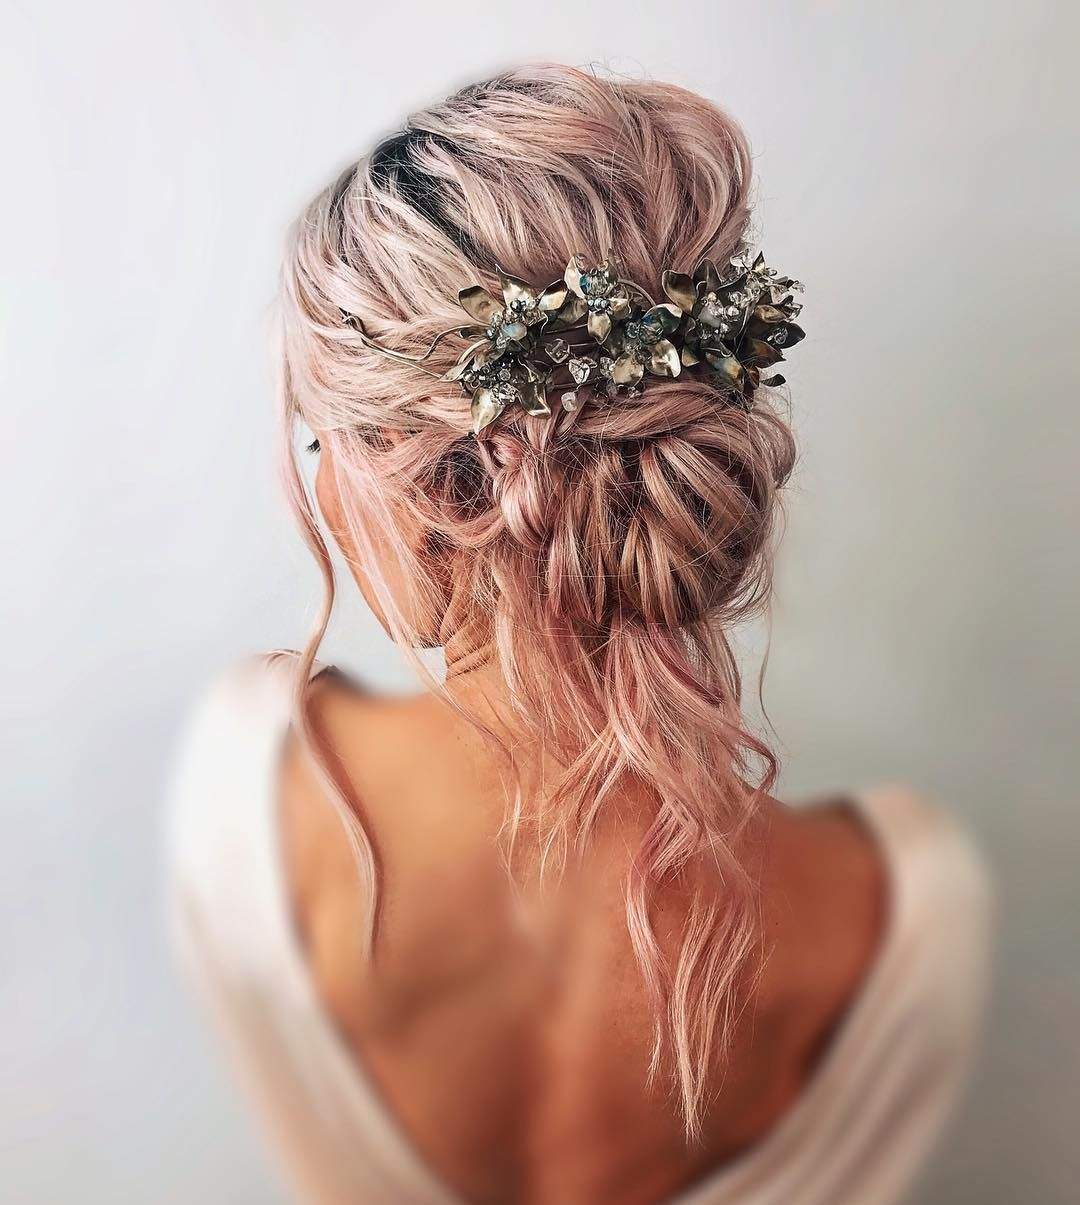 Textured Updo Hairstyle Best Recipes Fashion On Trendshairstyles